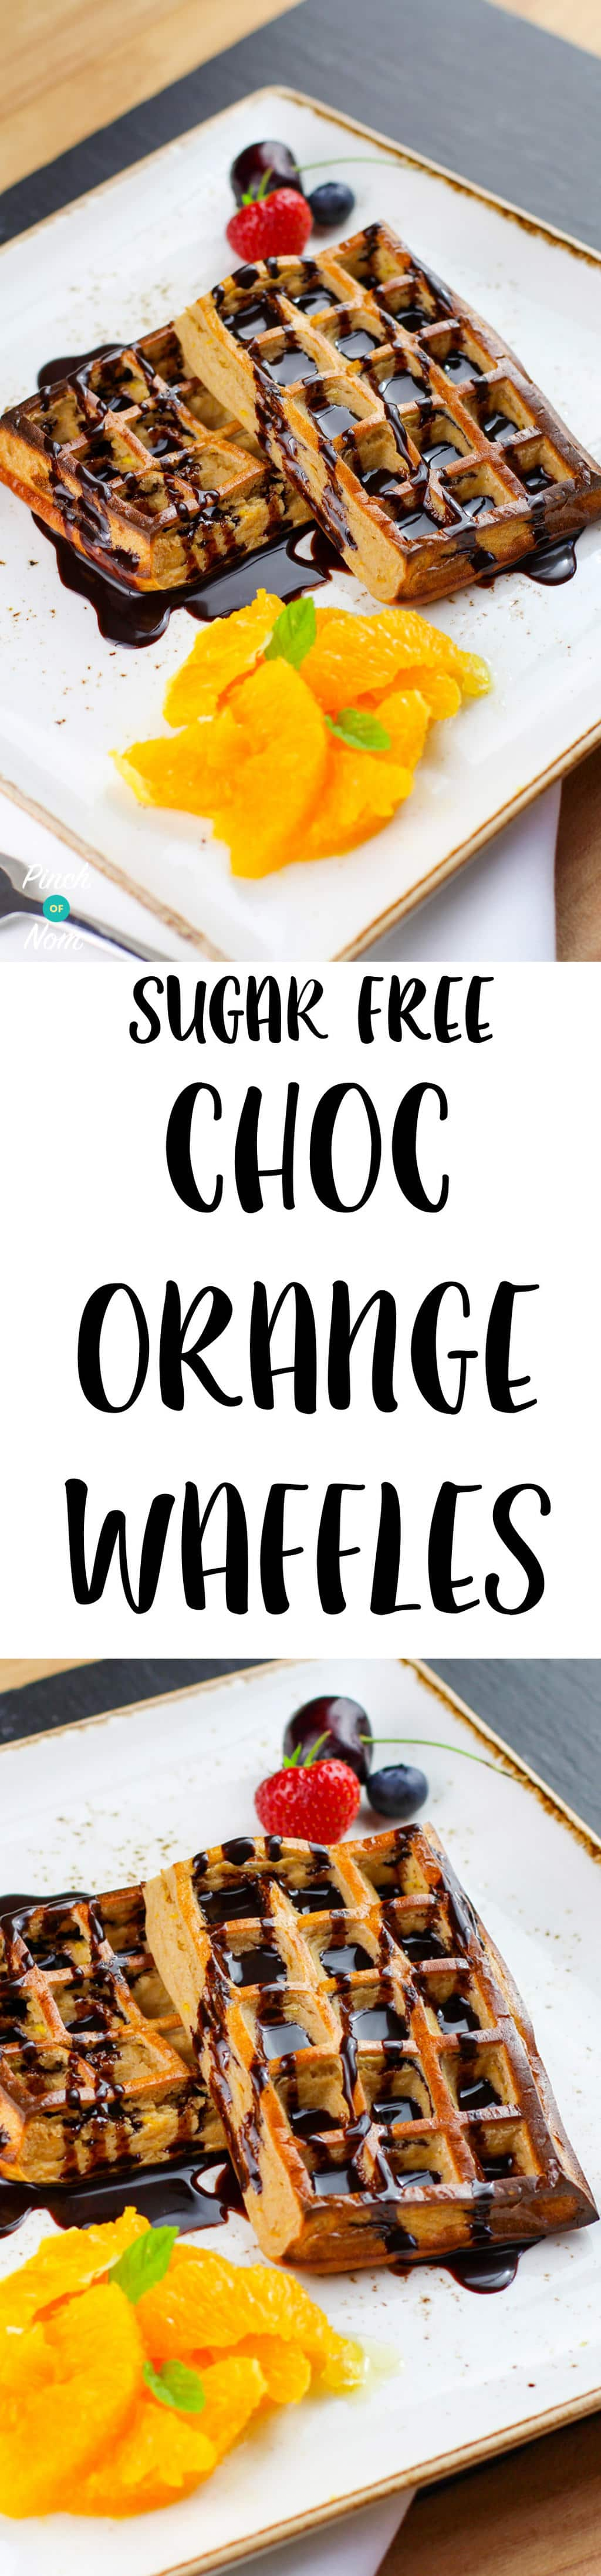 sugar-free-Choc-Orange-Waffles-LONG-PIN